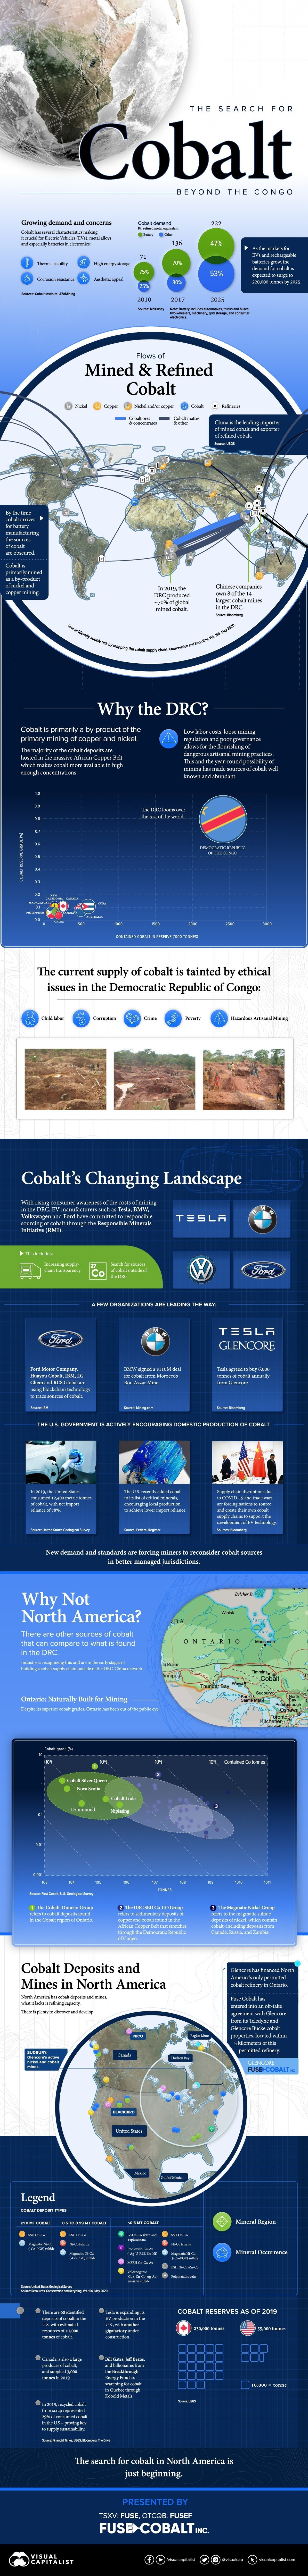 The Search for Cobalt Beyond the Congo #Infographic